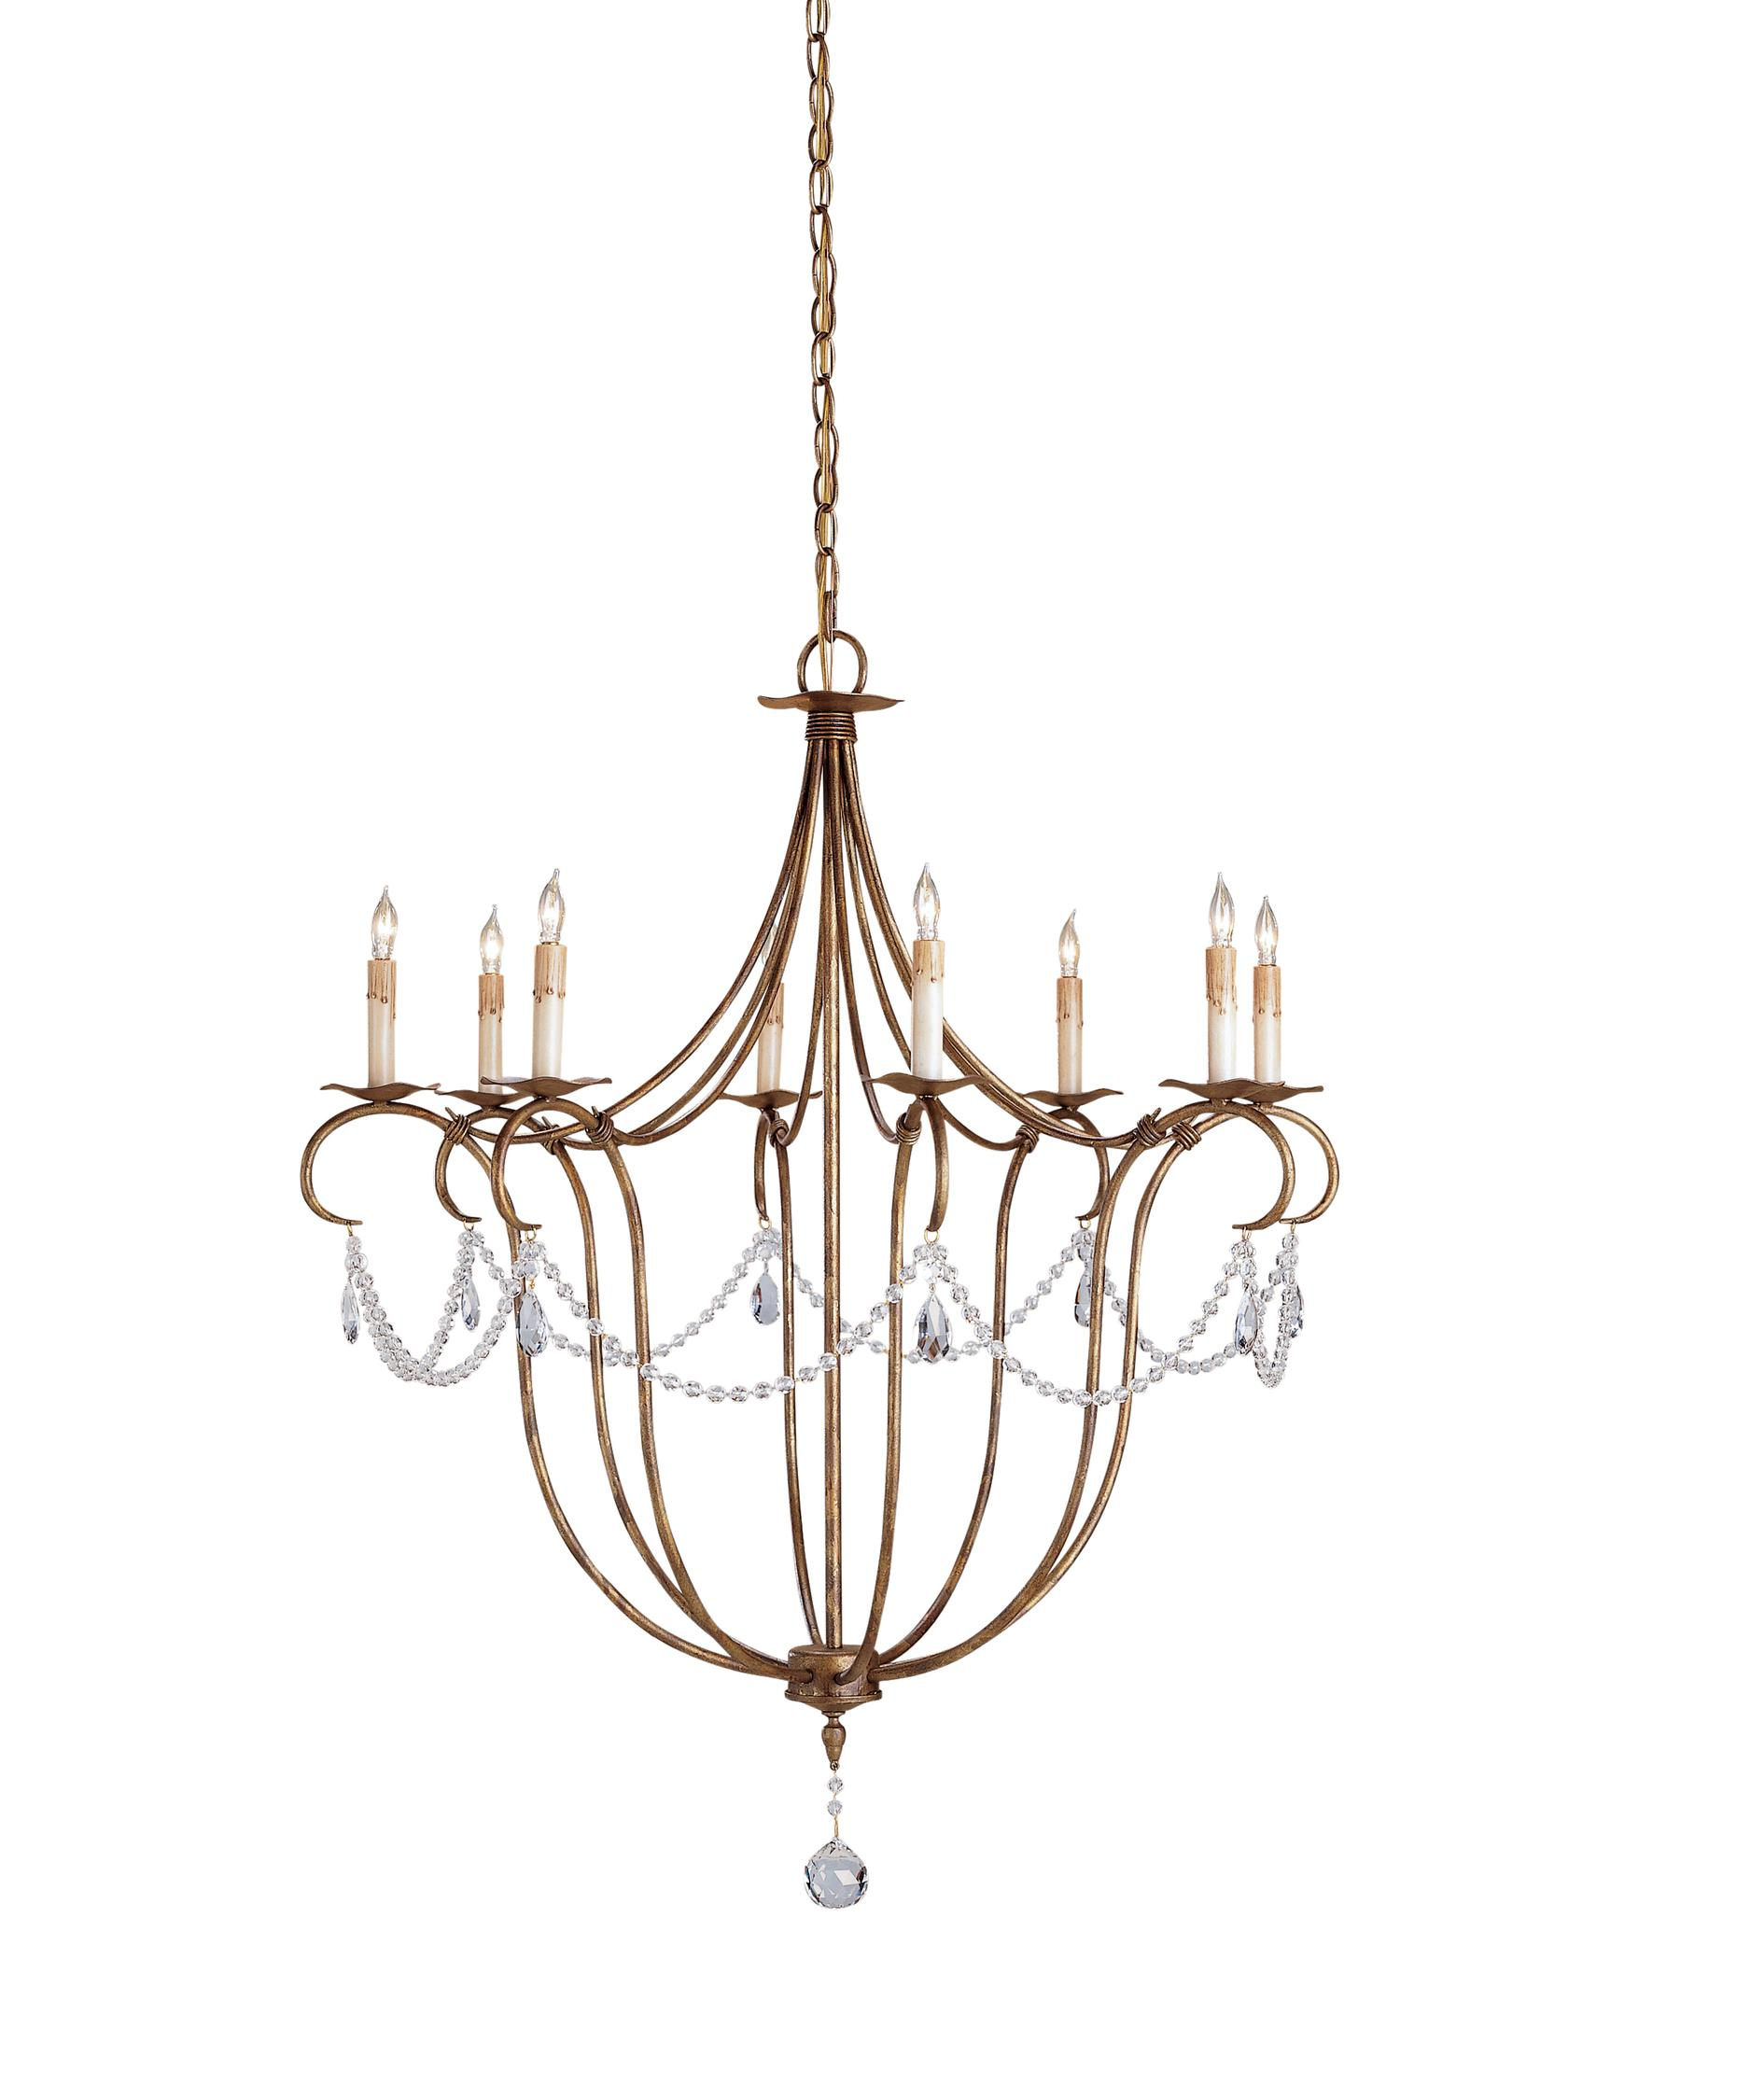 Currey and Company Crystal Lights 31 Inch Wide 8 Light Chandelier – Currey and Company Lighting Chandeliers